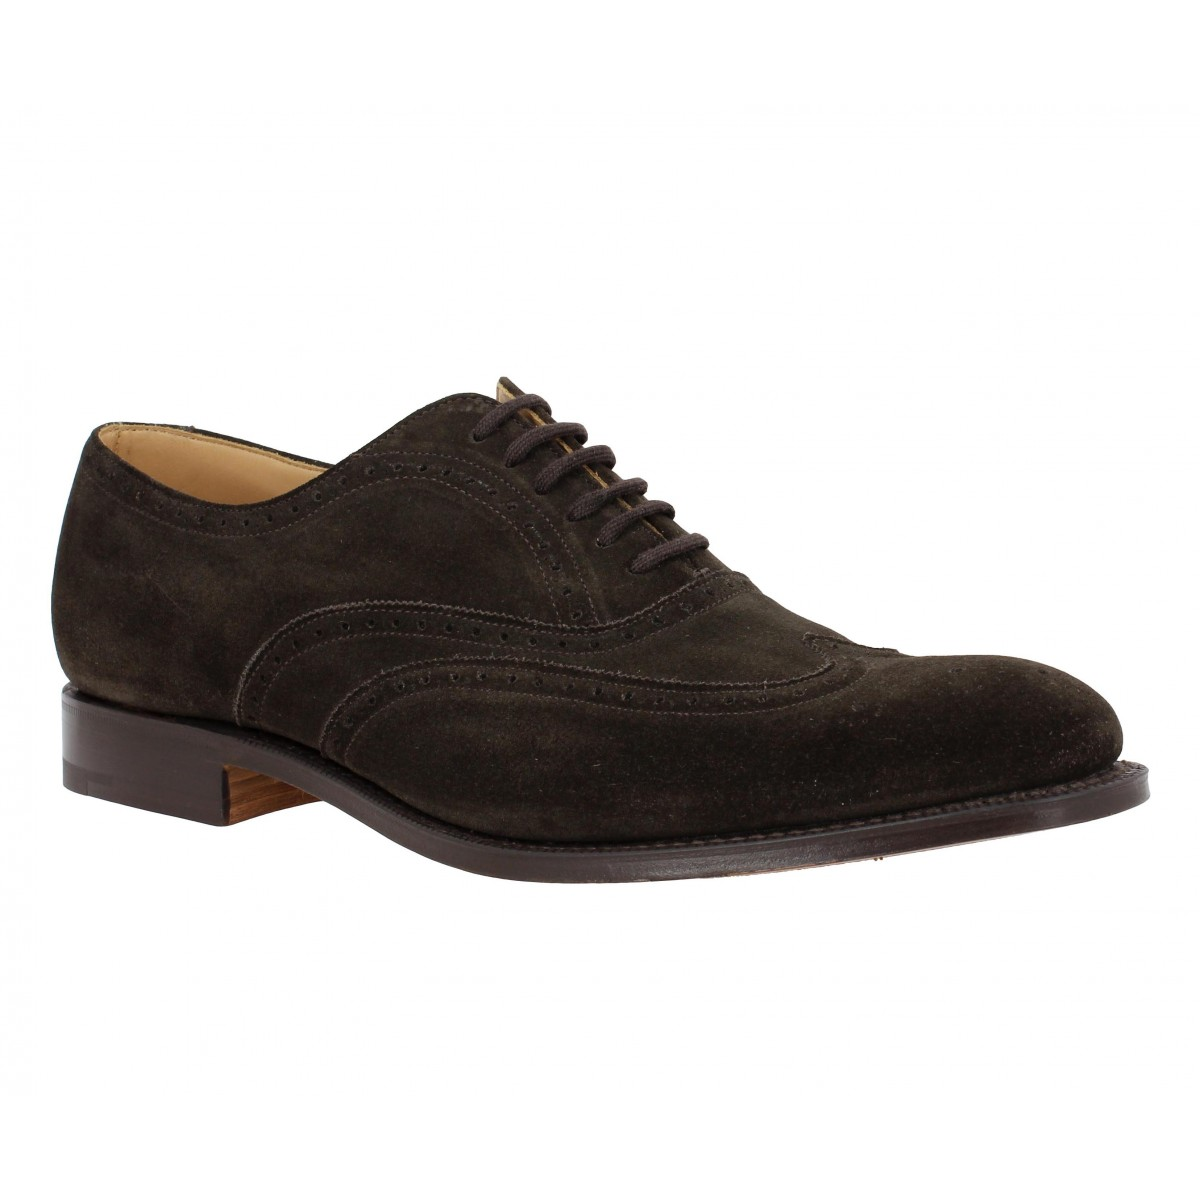 Chaussures à lacets CHURCH'S New York velours Homme Marron